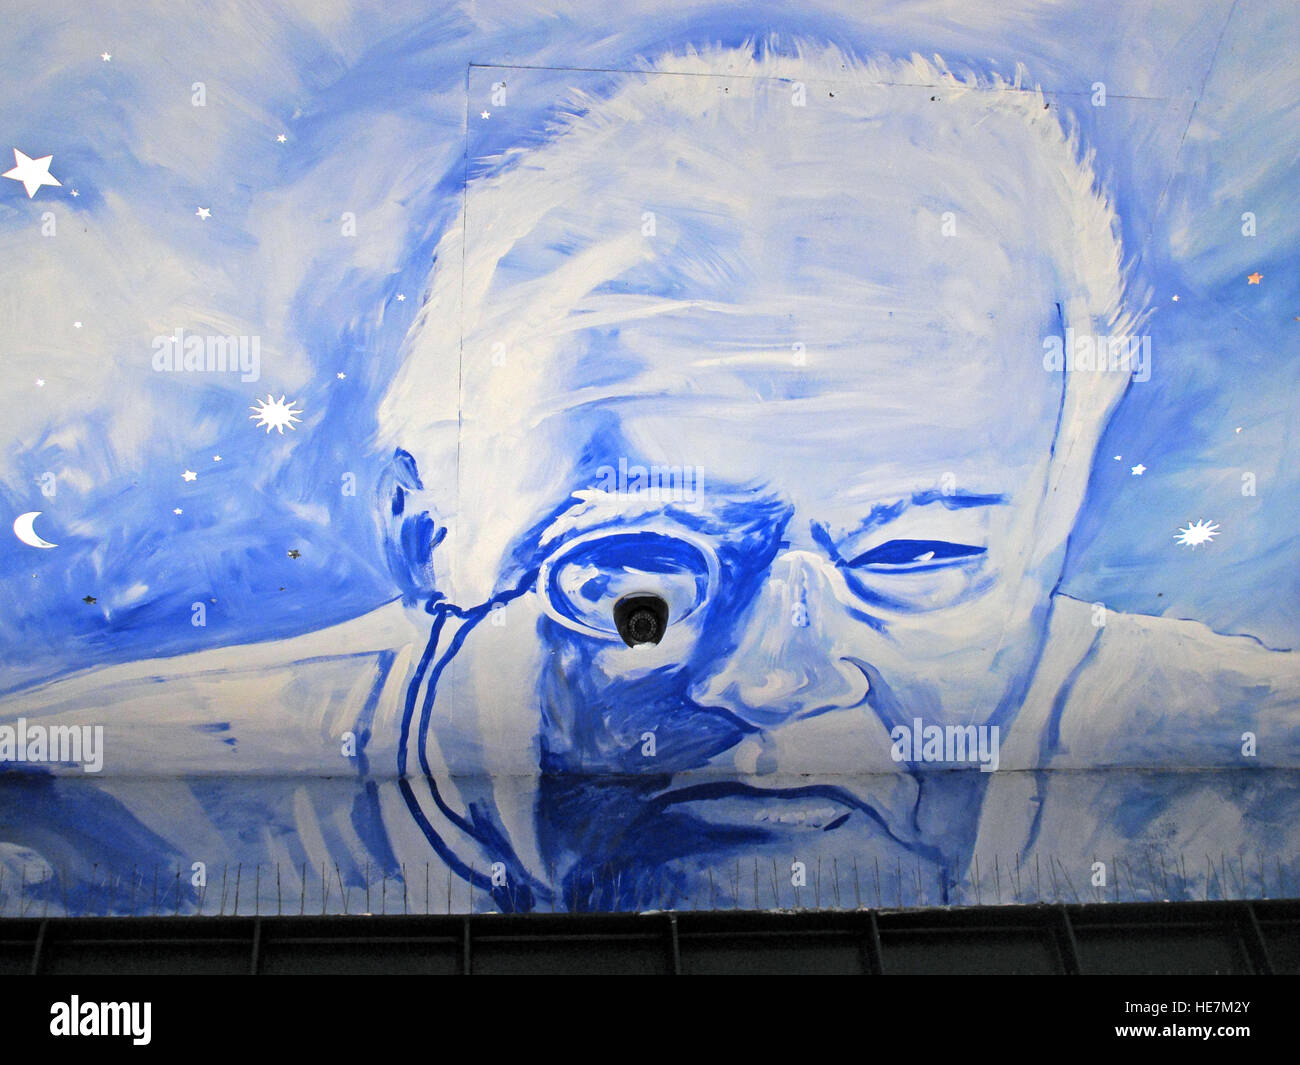 Duke Of York Pub,Belfast - Patrick moore Stock Photo